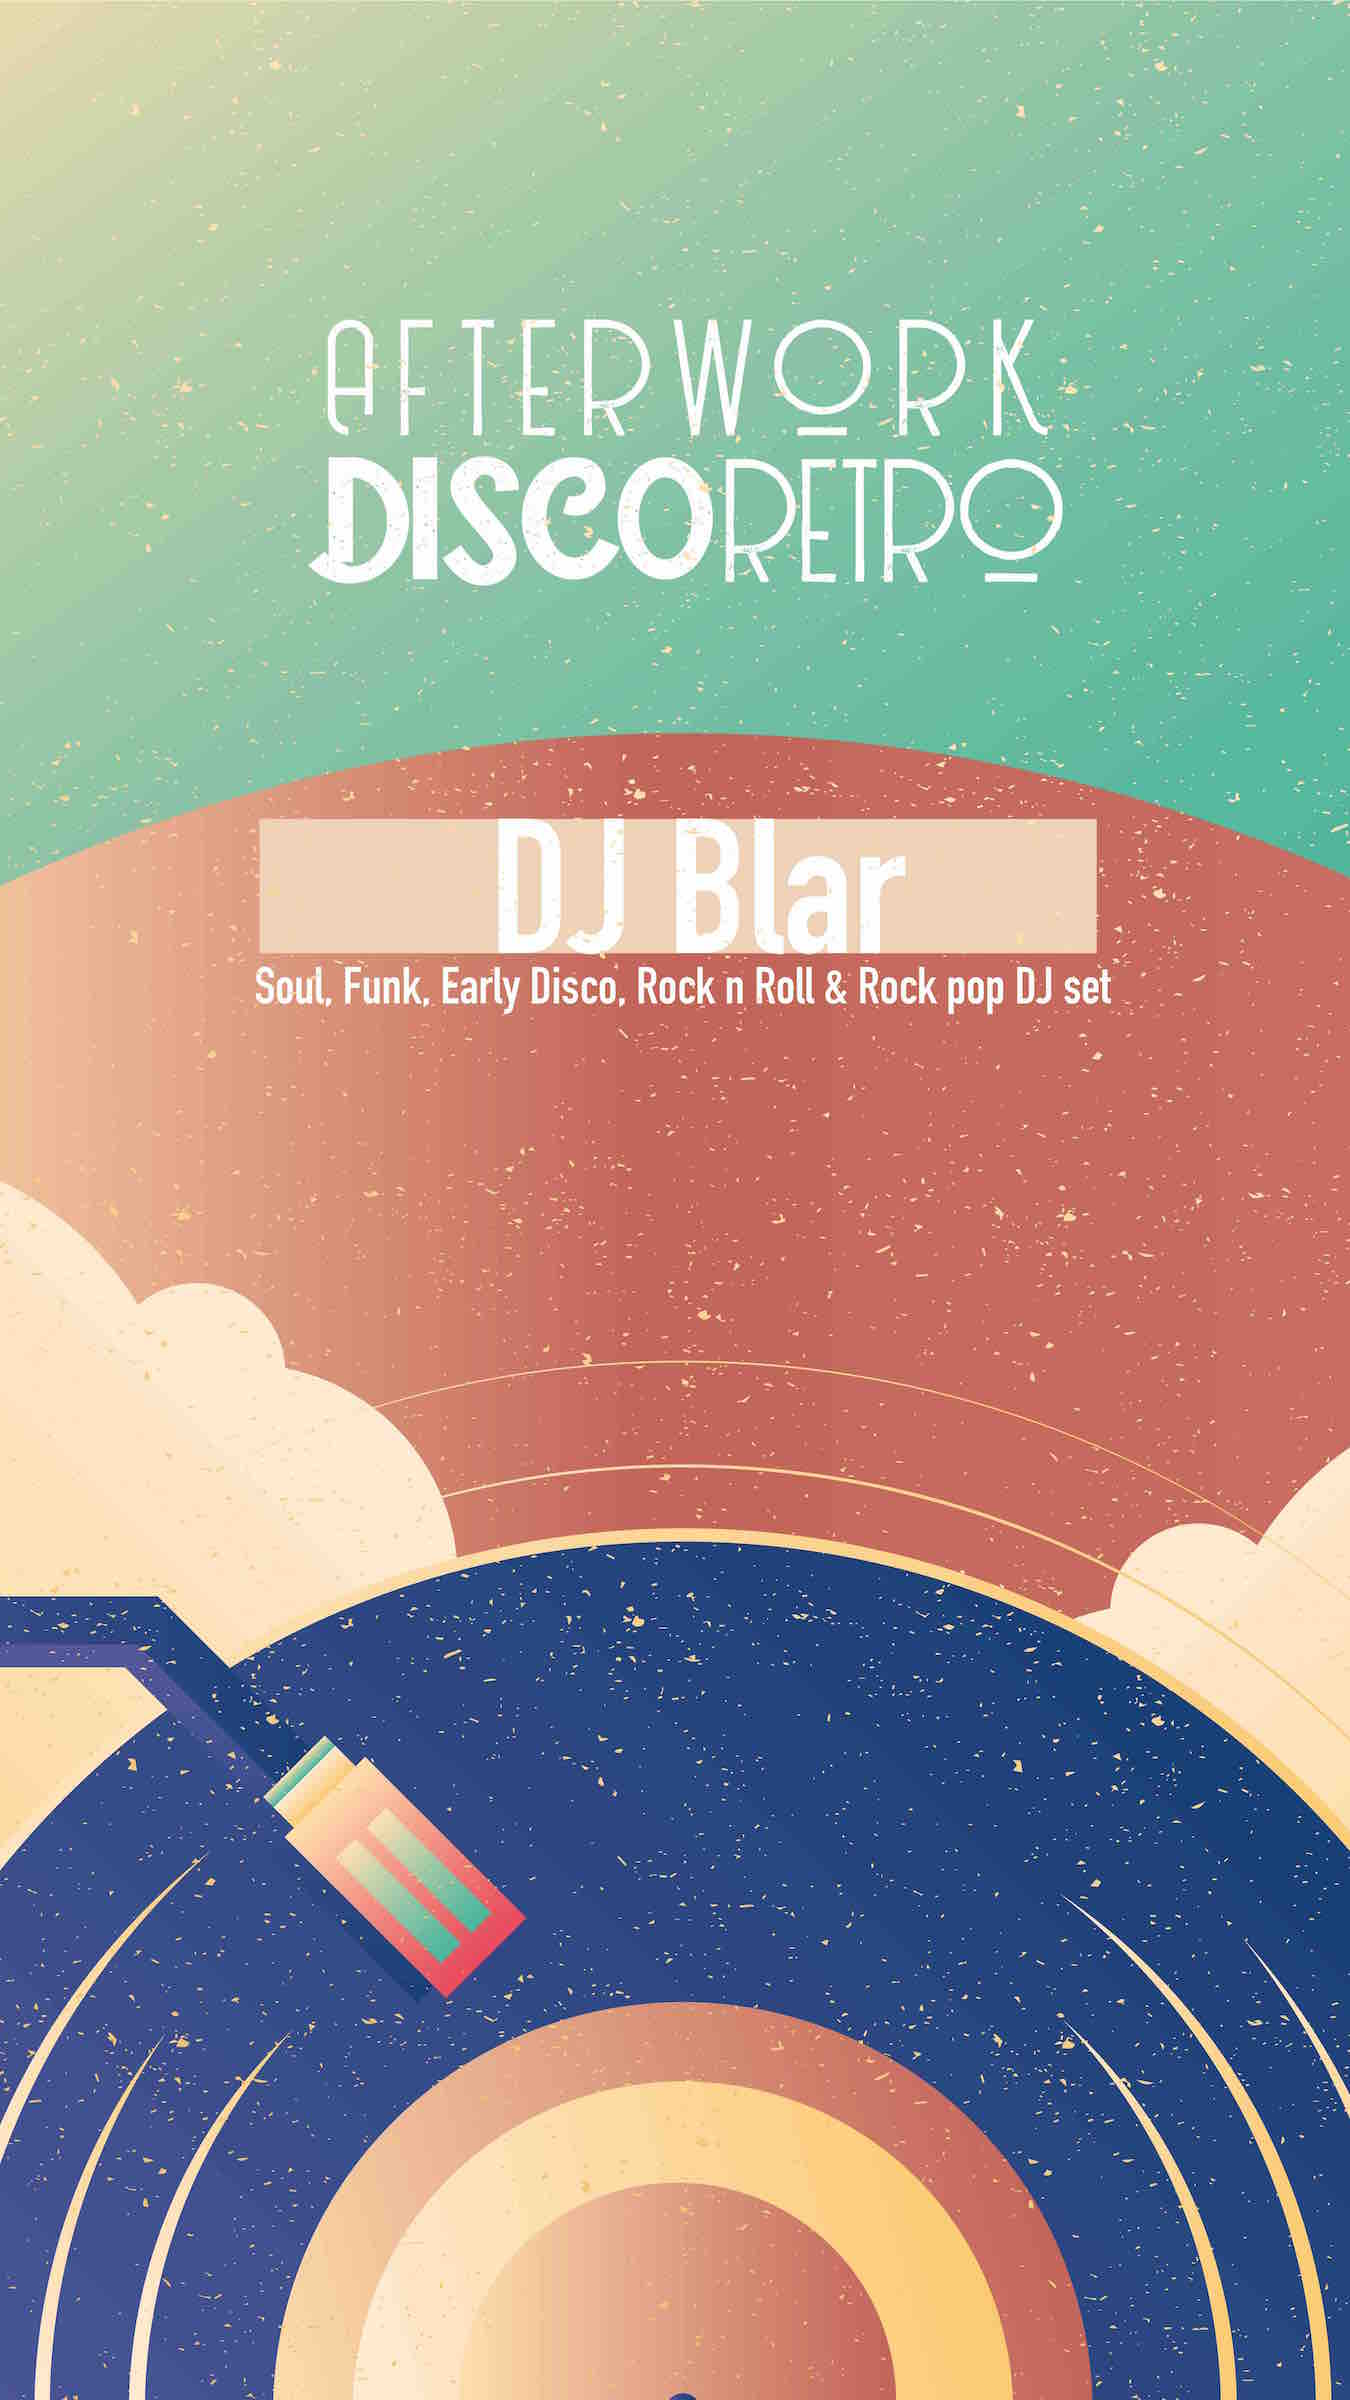 DECLI DISCO RETRO_vertical_djblar_web